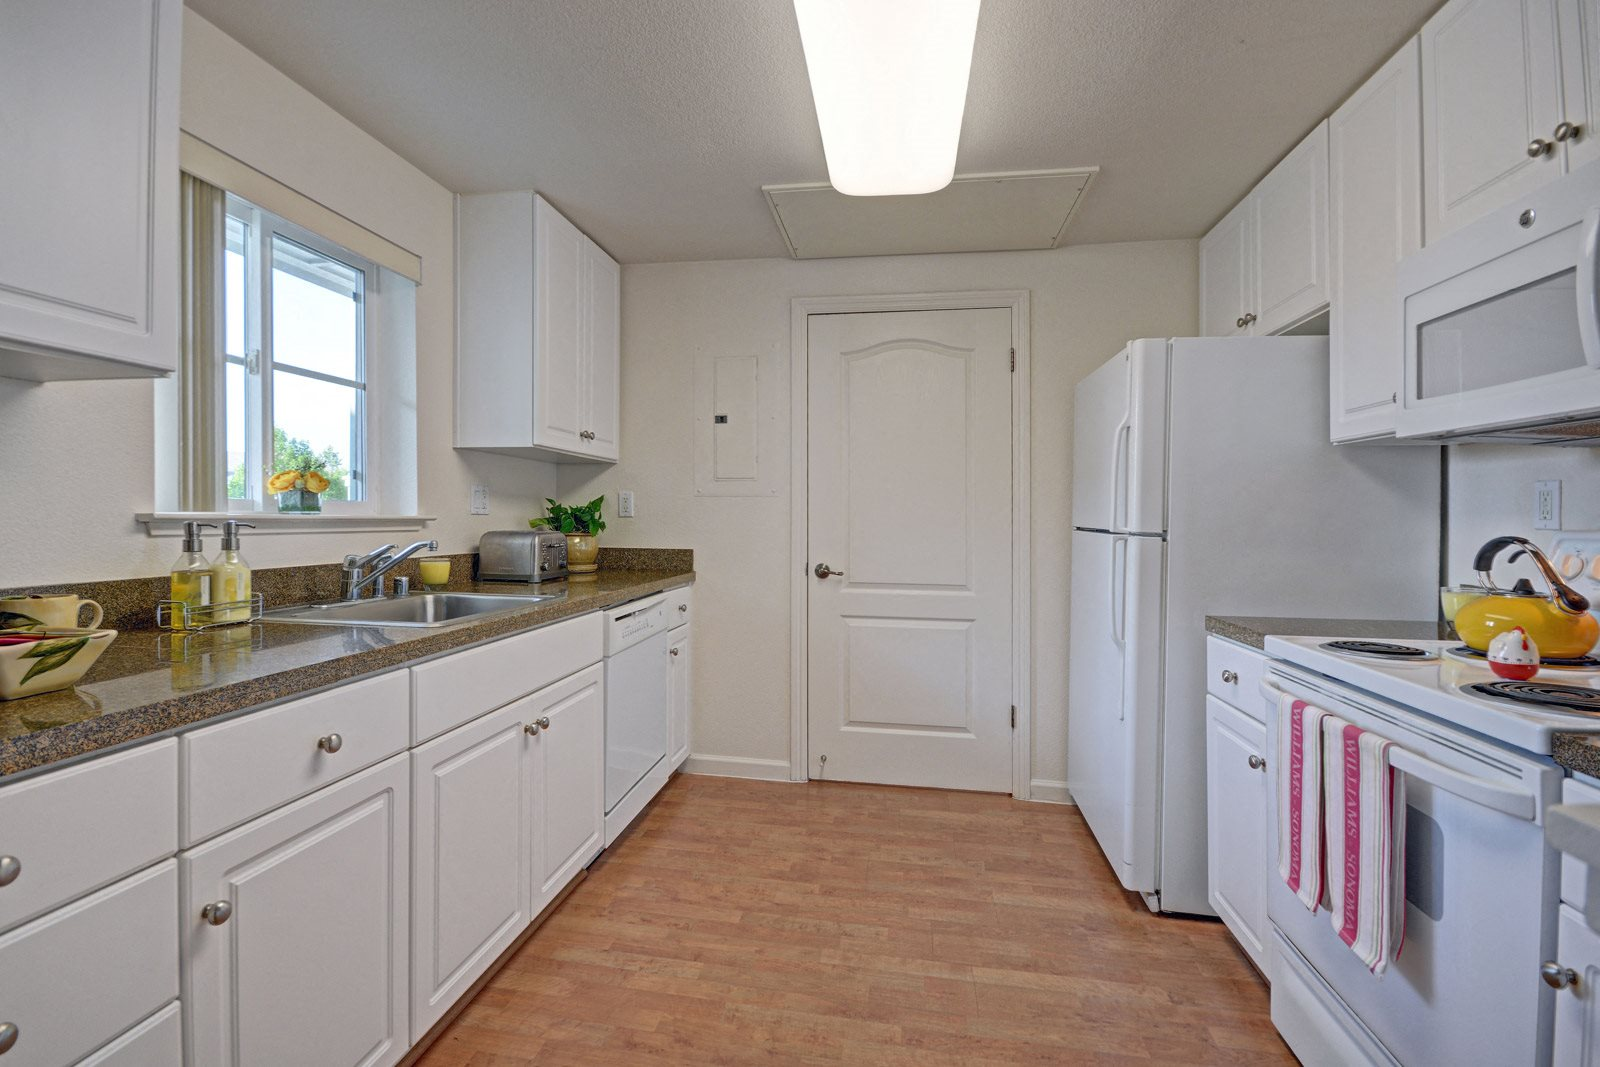 Wood Flooring in Kitchen at The Kensington, 1552 East Gate Way, #126, CA